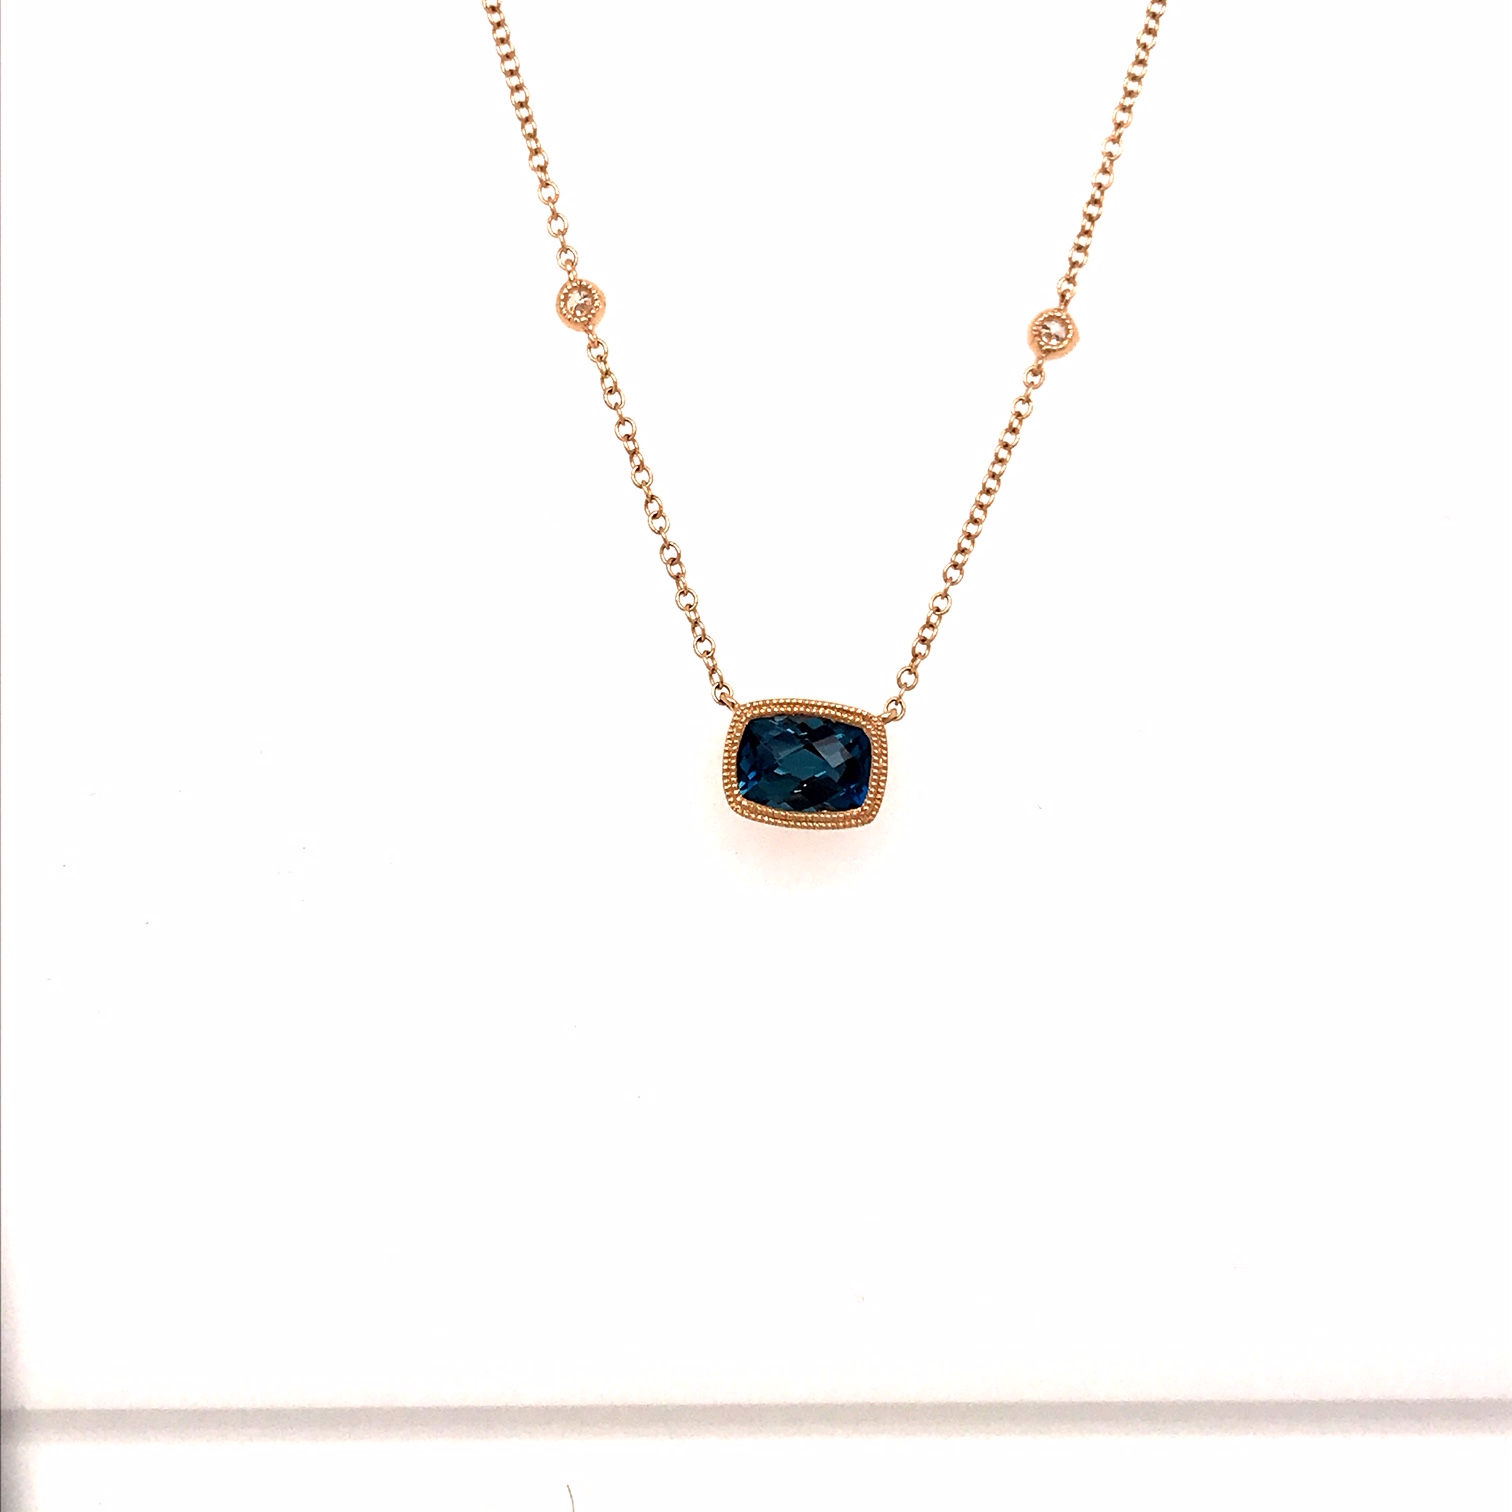 Topaz and Diamond Necklet in 9 carat yellow gold.